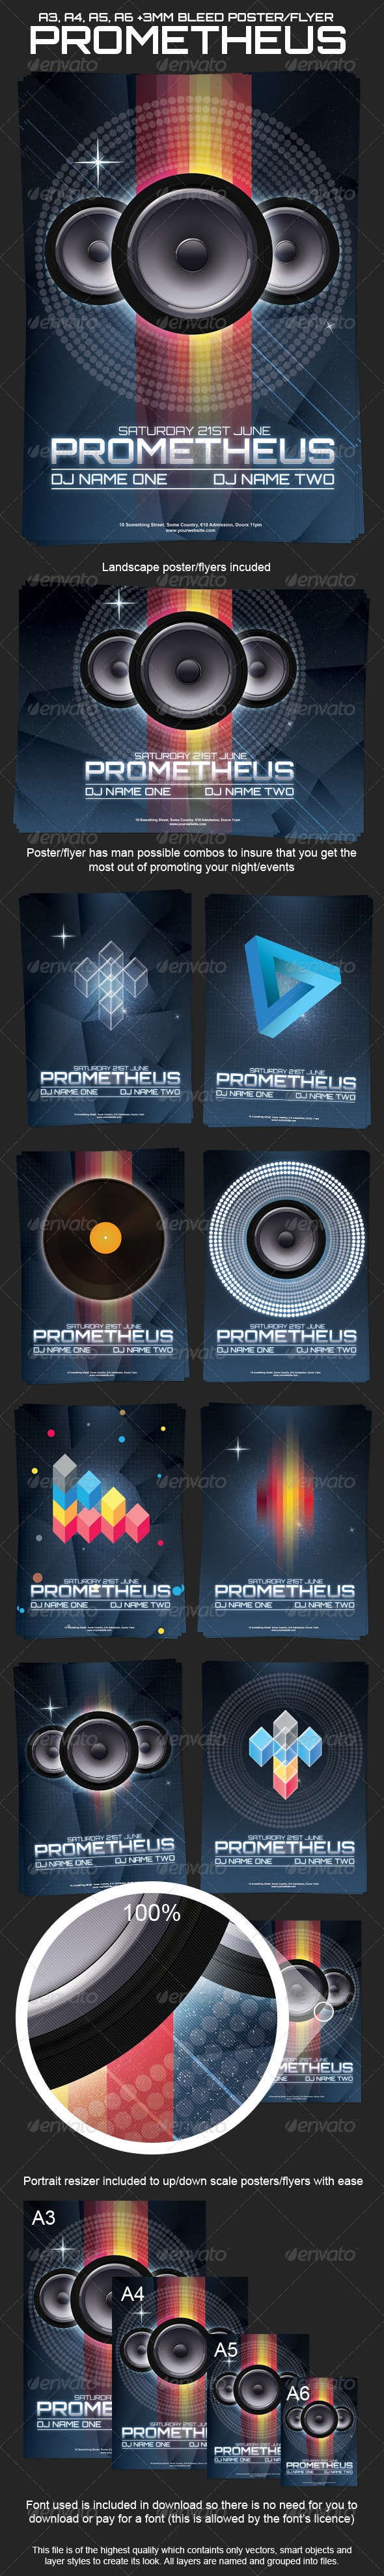 Prometheus Poster and Flyer - Clubs & Parties Events